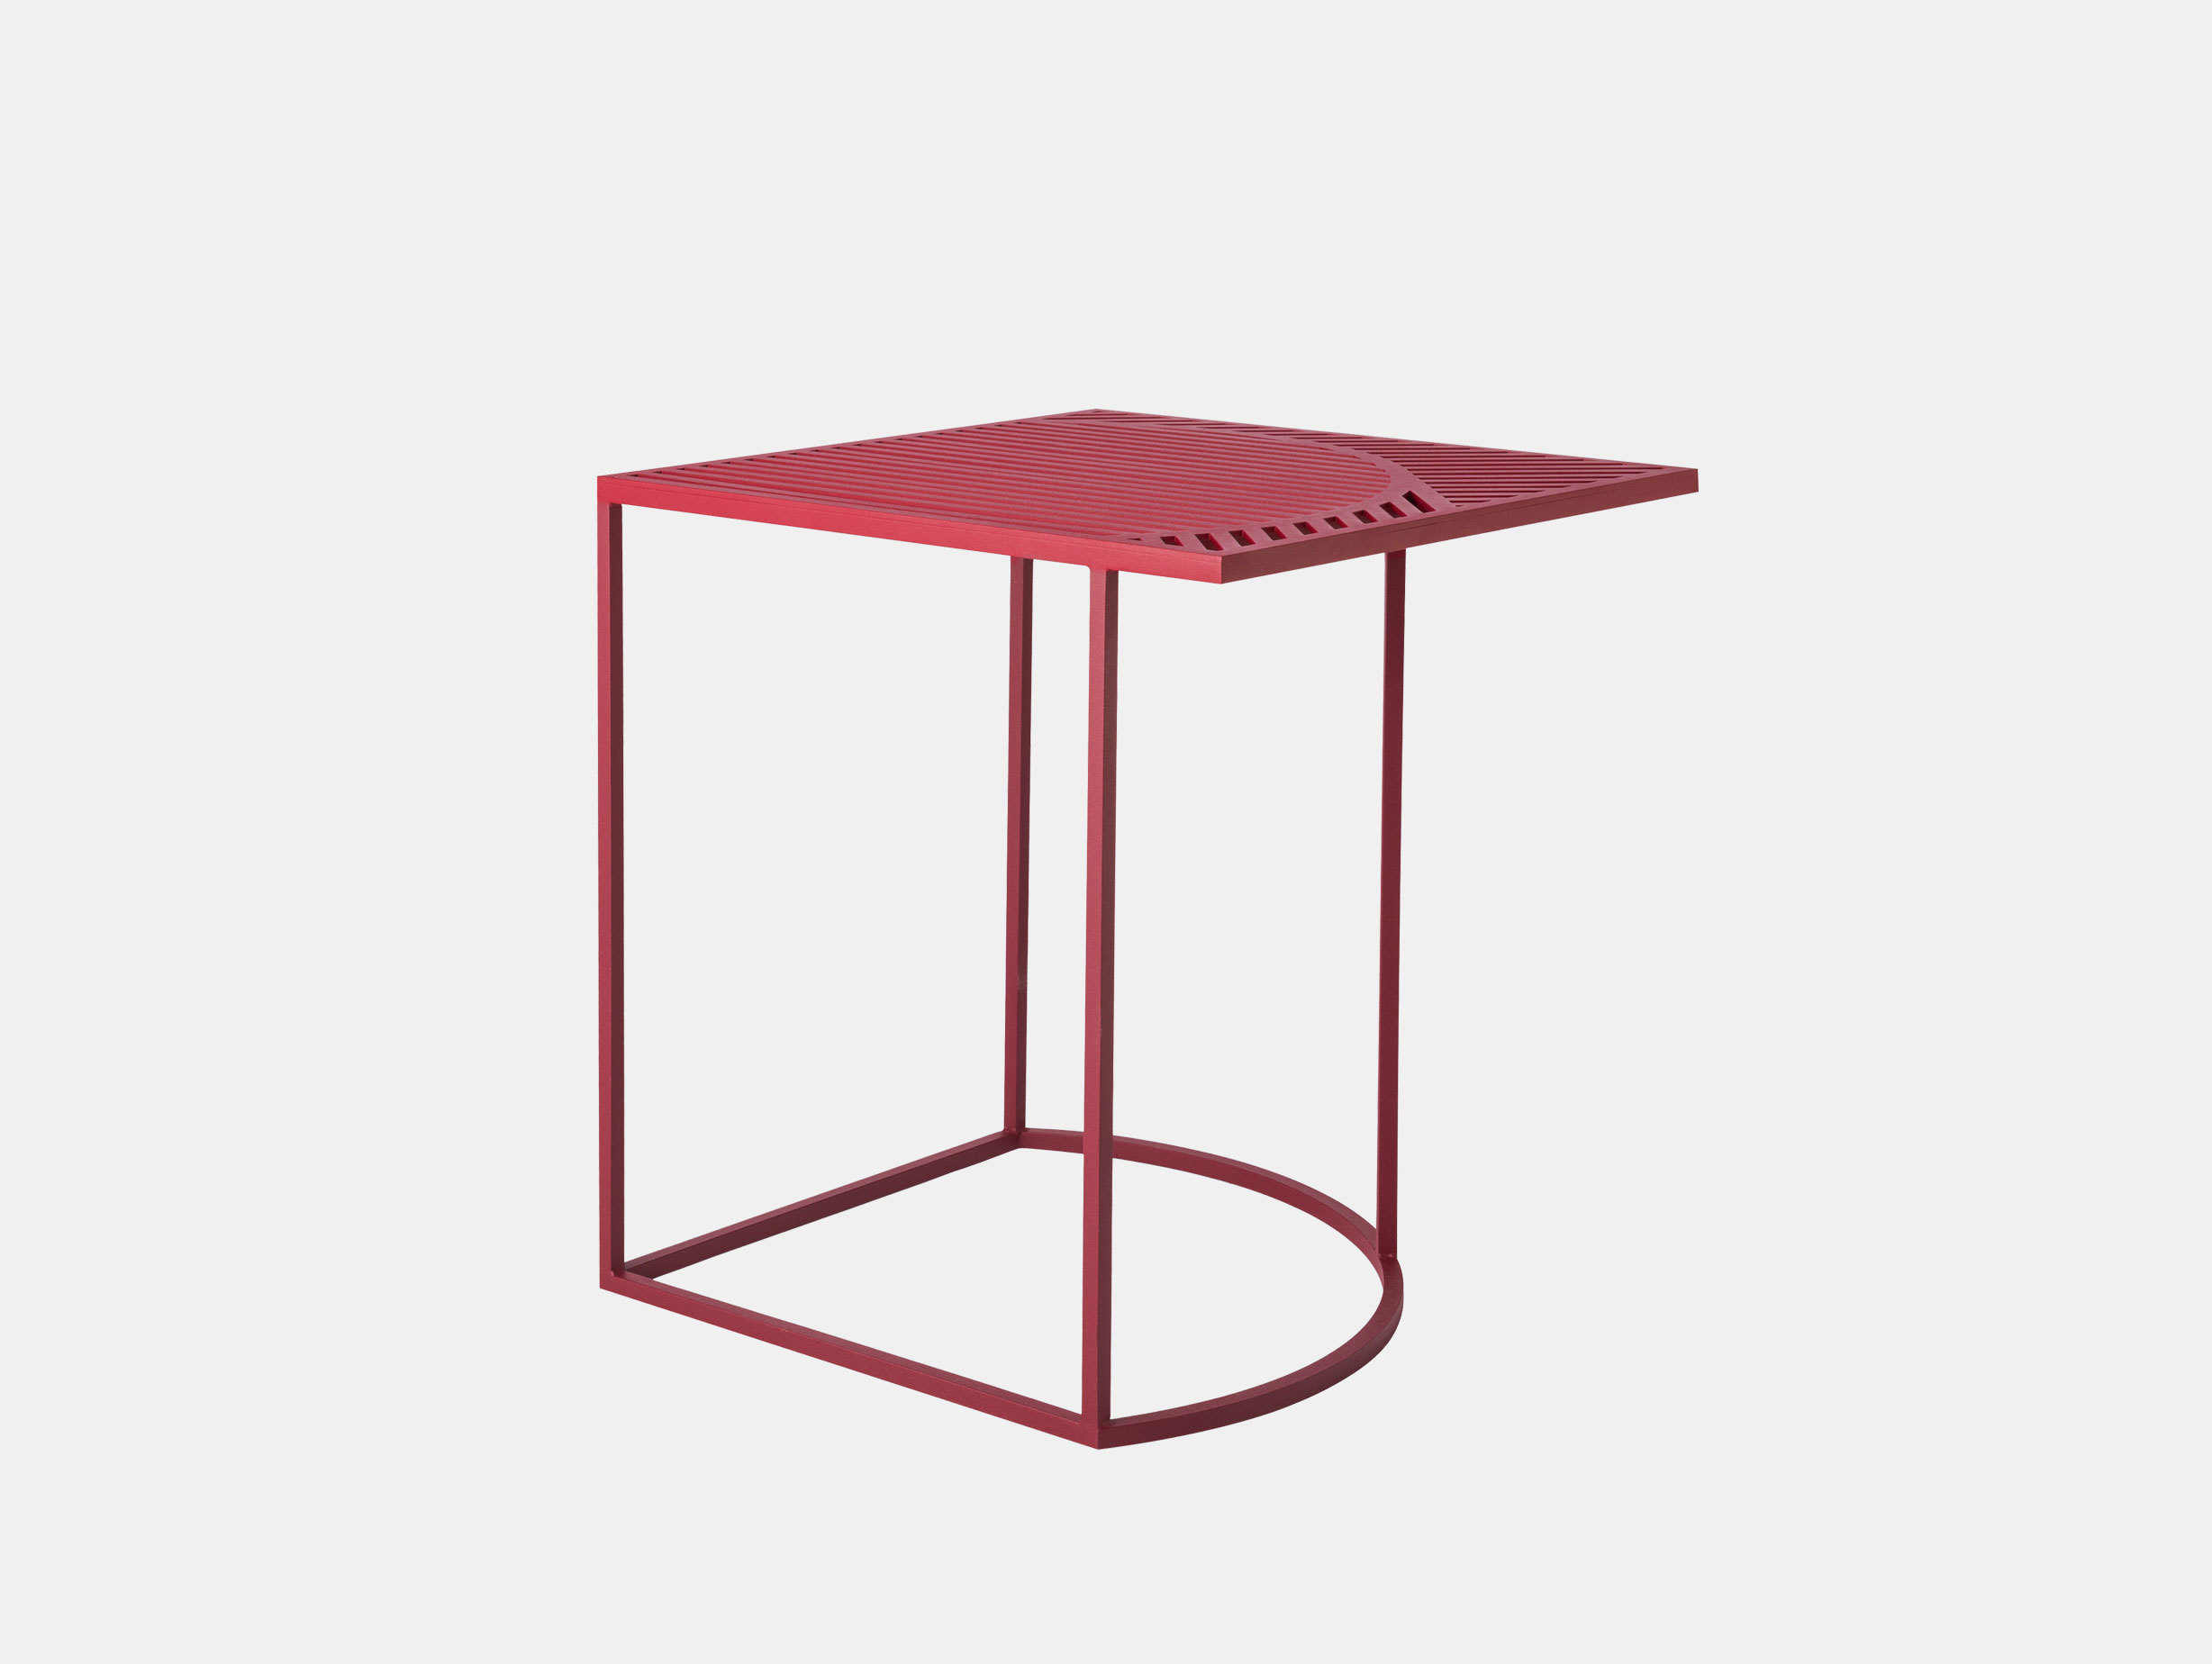 Petite Friture Iso Side Table Square Red Pool